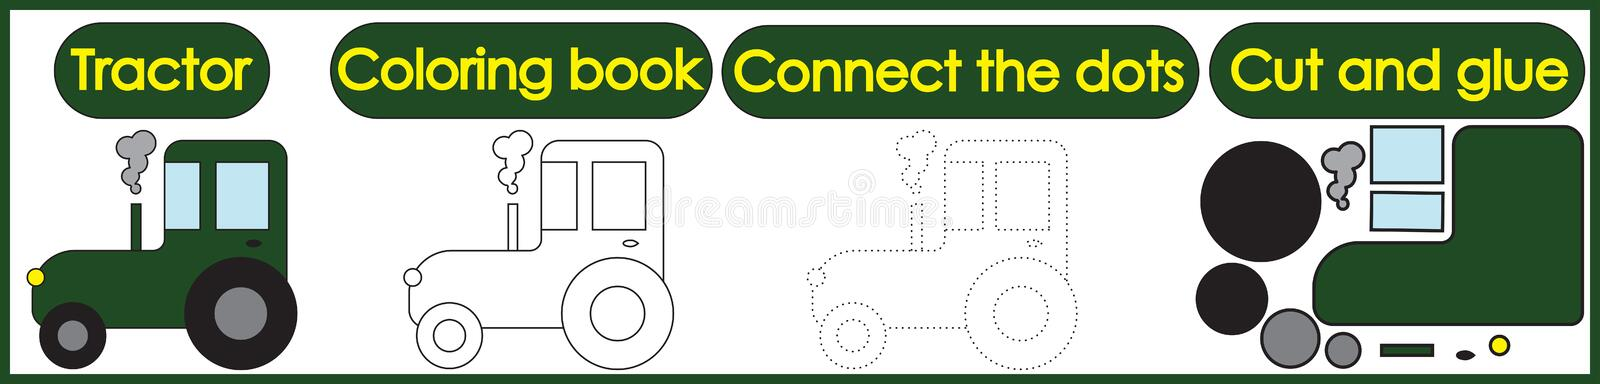 Games for children 3 in 1. Coloring book, connect the dots, cut. And glue. Tractor cartoon. Vector illustration royalty free illustration